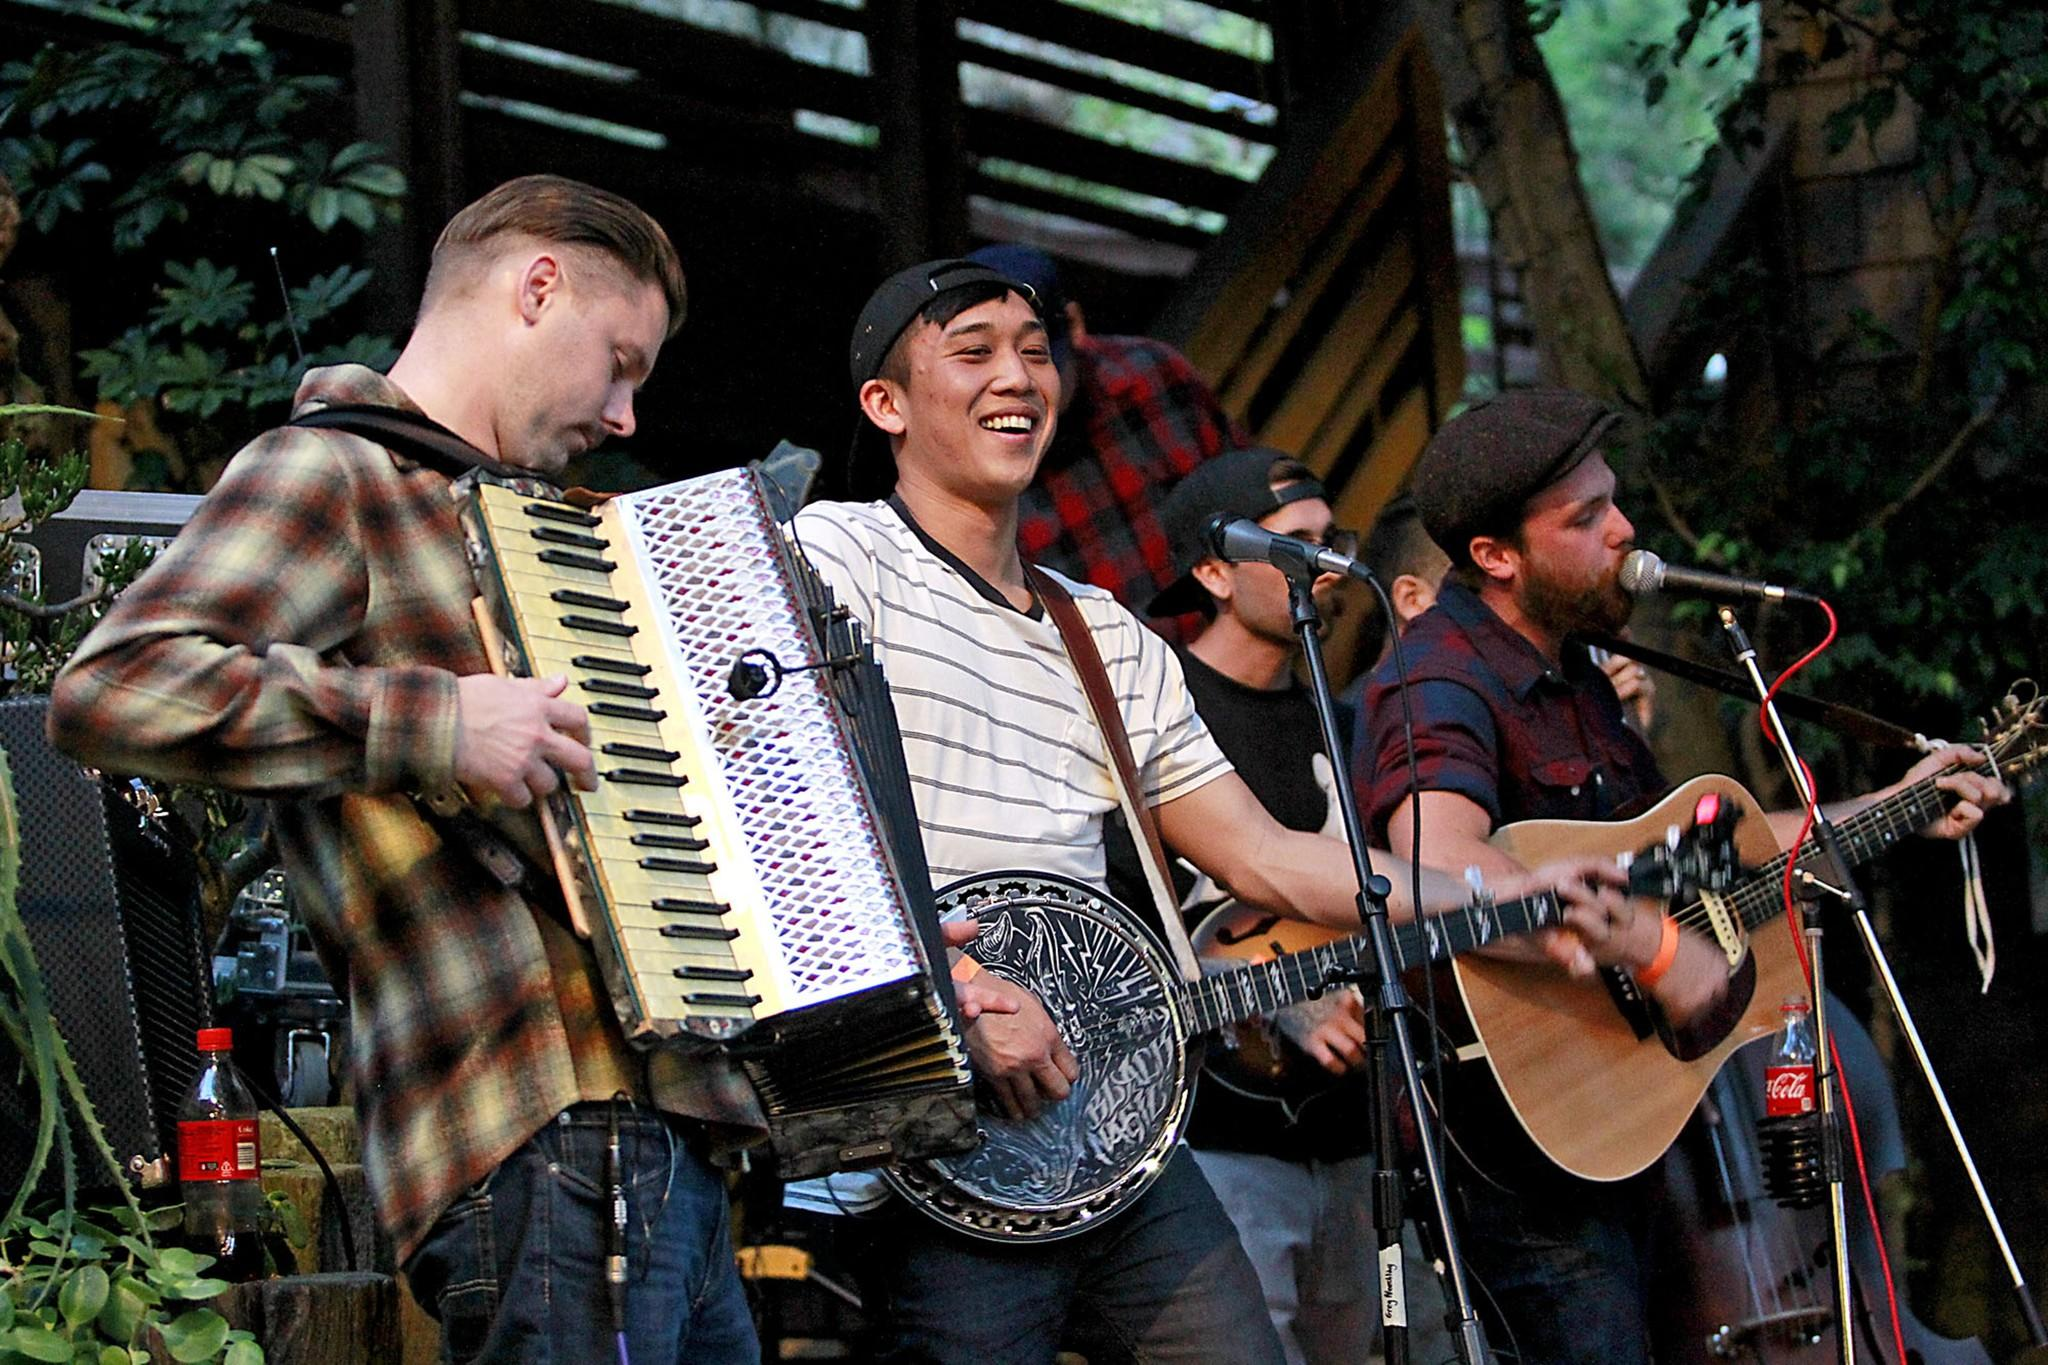 Vinne and the Hooligan's Scott Young, Mike Pham, and Vinnie Carlini, jam during the 2014 Blue Water Music Festival at the Sawdust on Saturday.